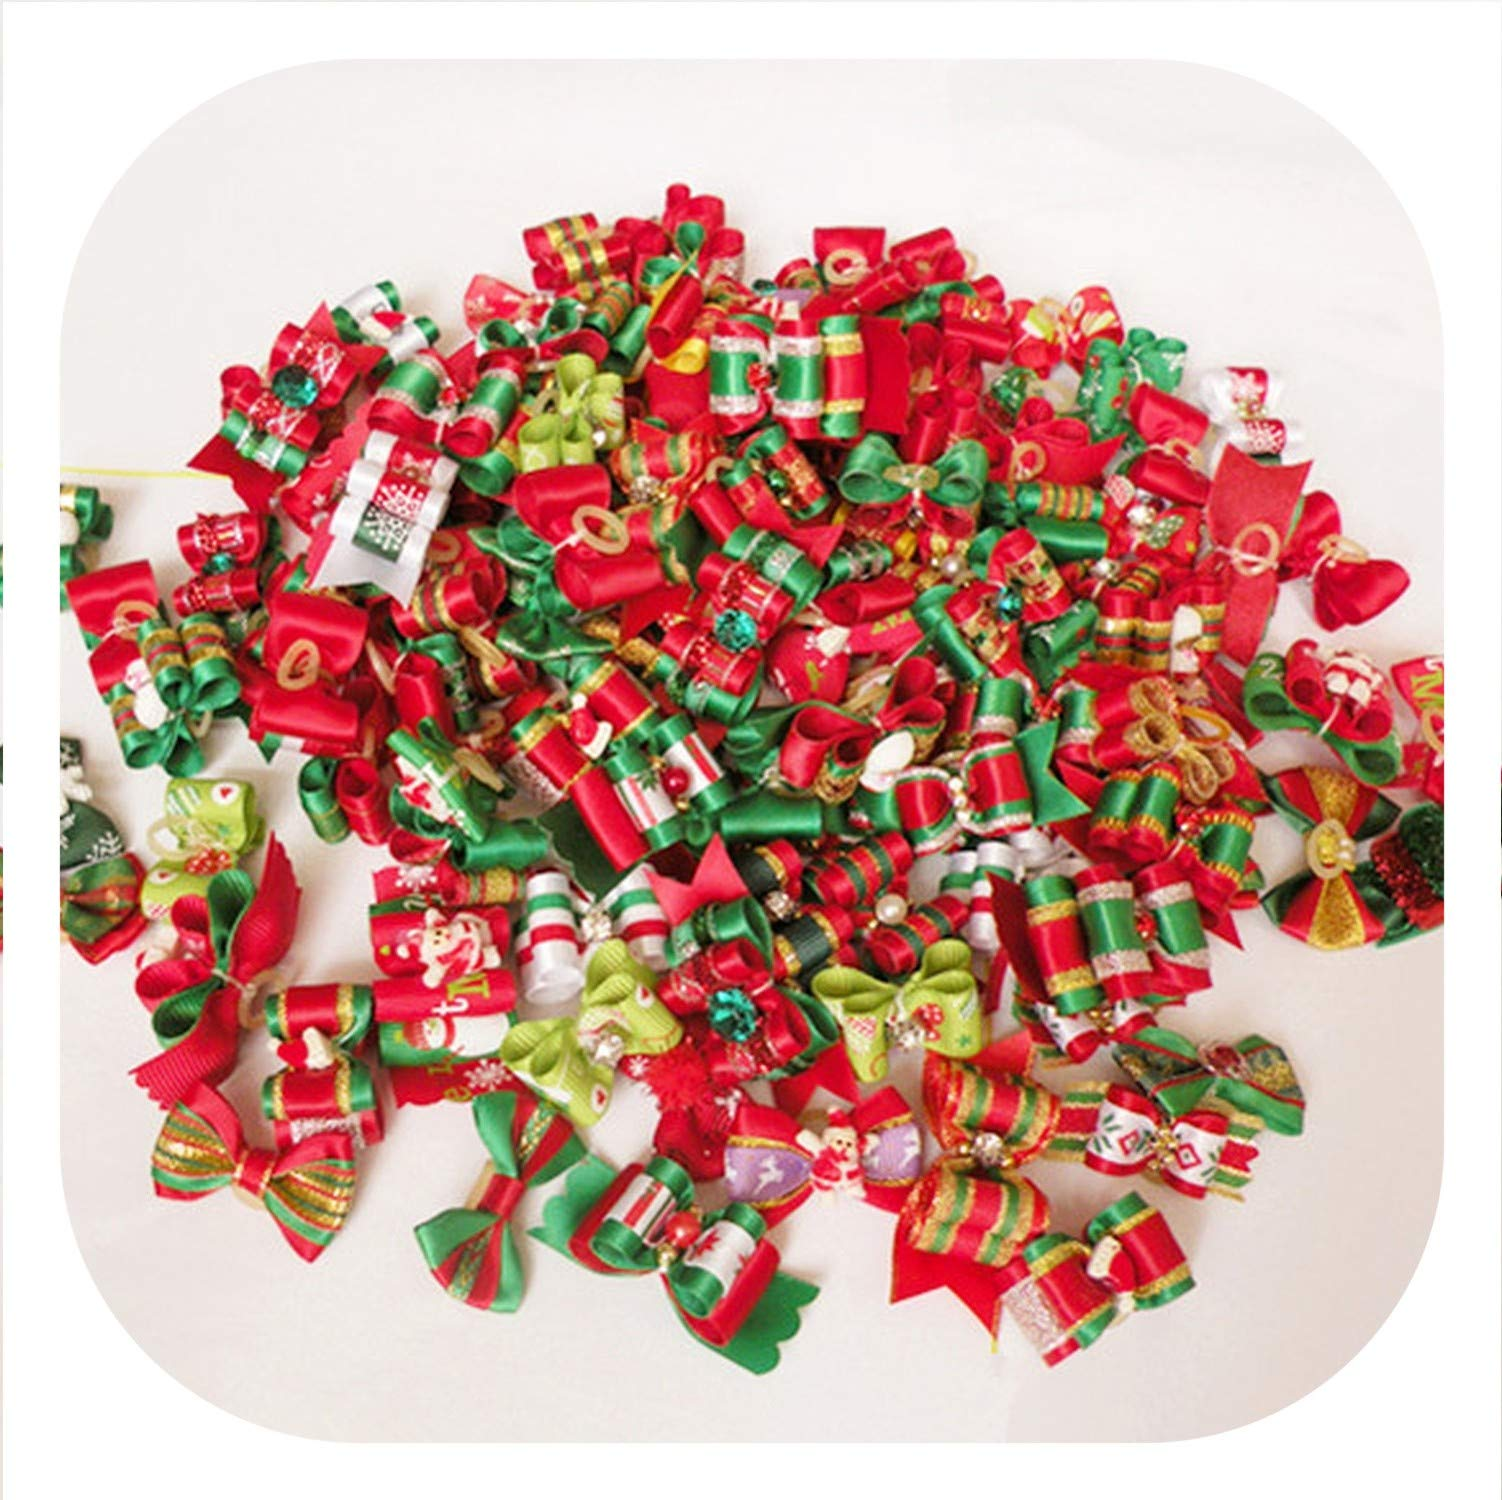 100PC/Lot Christmas Dog Bows Ribbon Pet Dog Hair Bows Dog Grooming Accessories Holiday Supplies Mix Styles,Mix Colors by PG-One